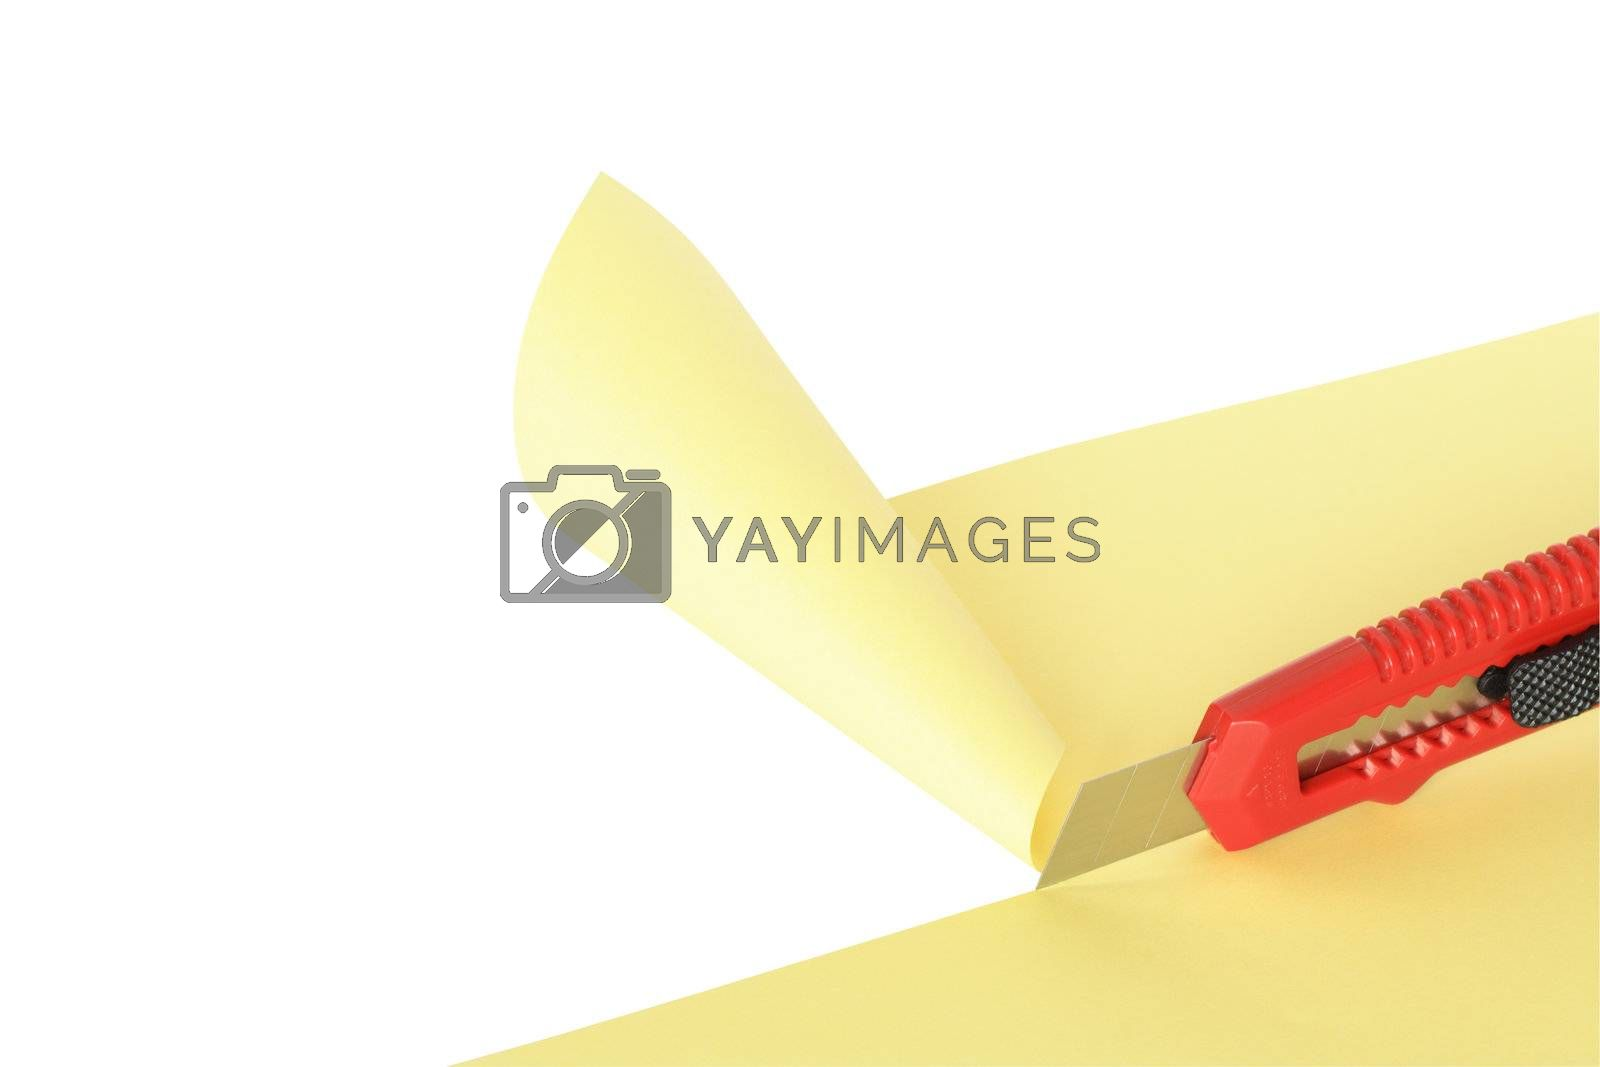 Royalty free image of Knife Cutting Paper by kvkirillov